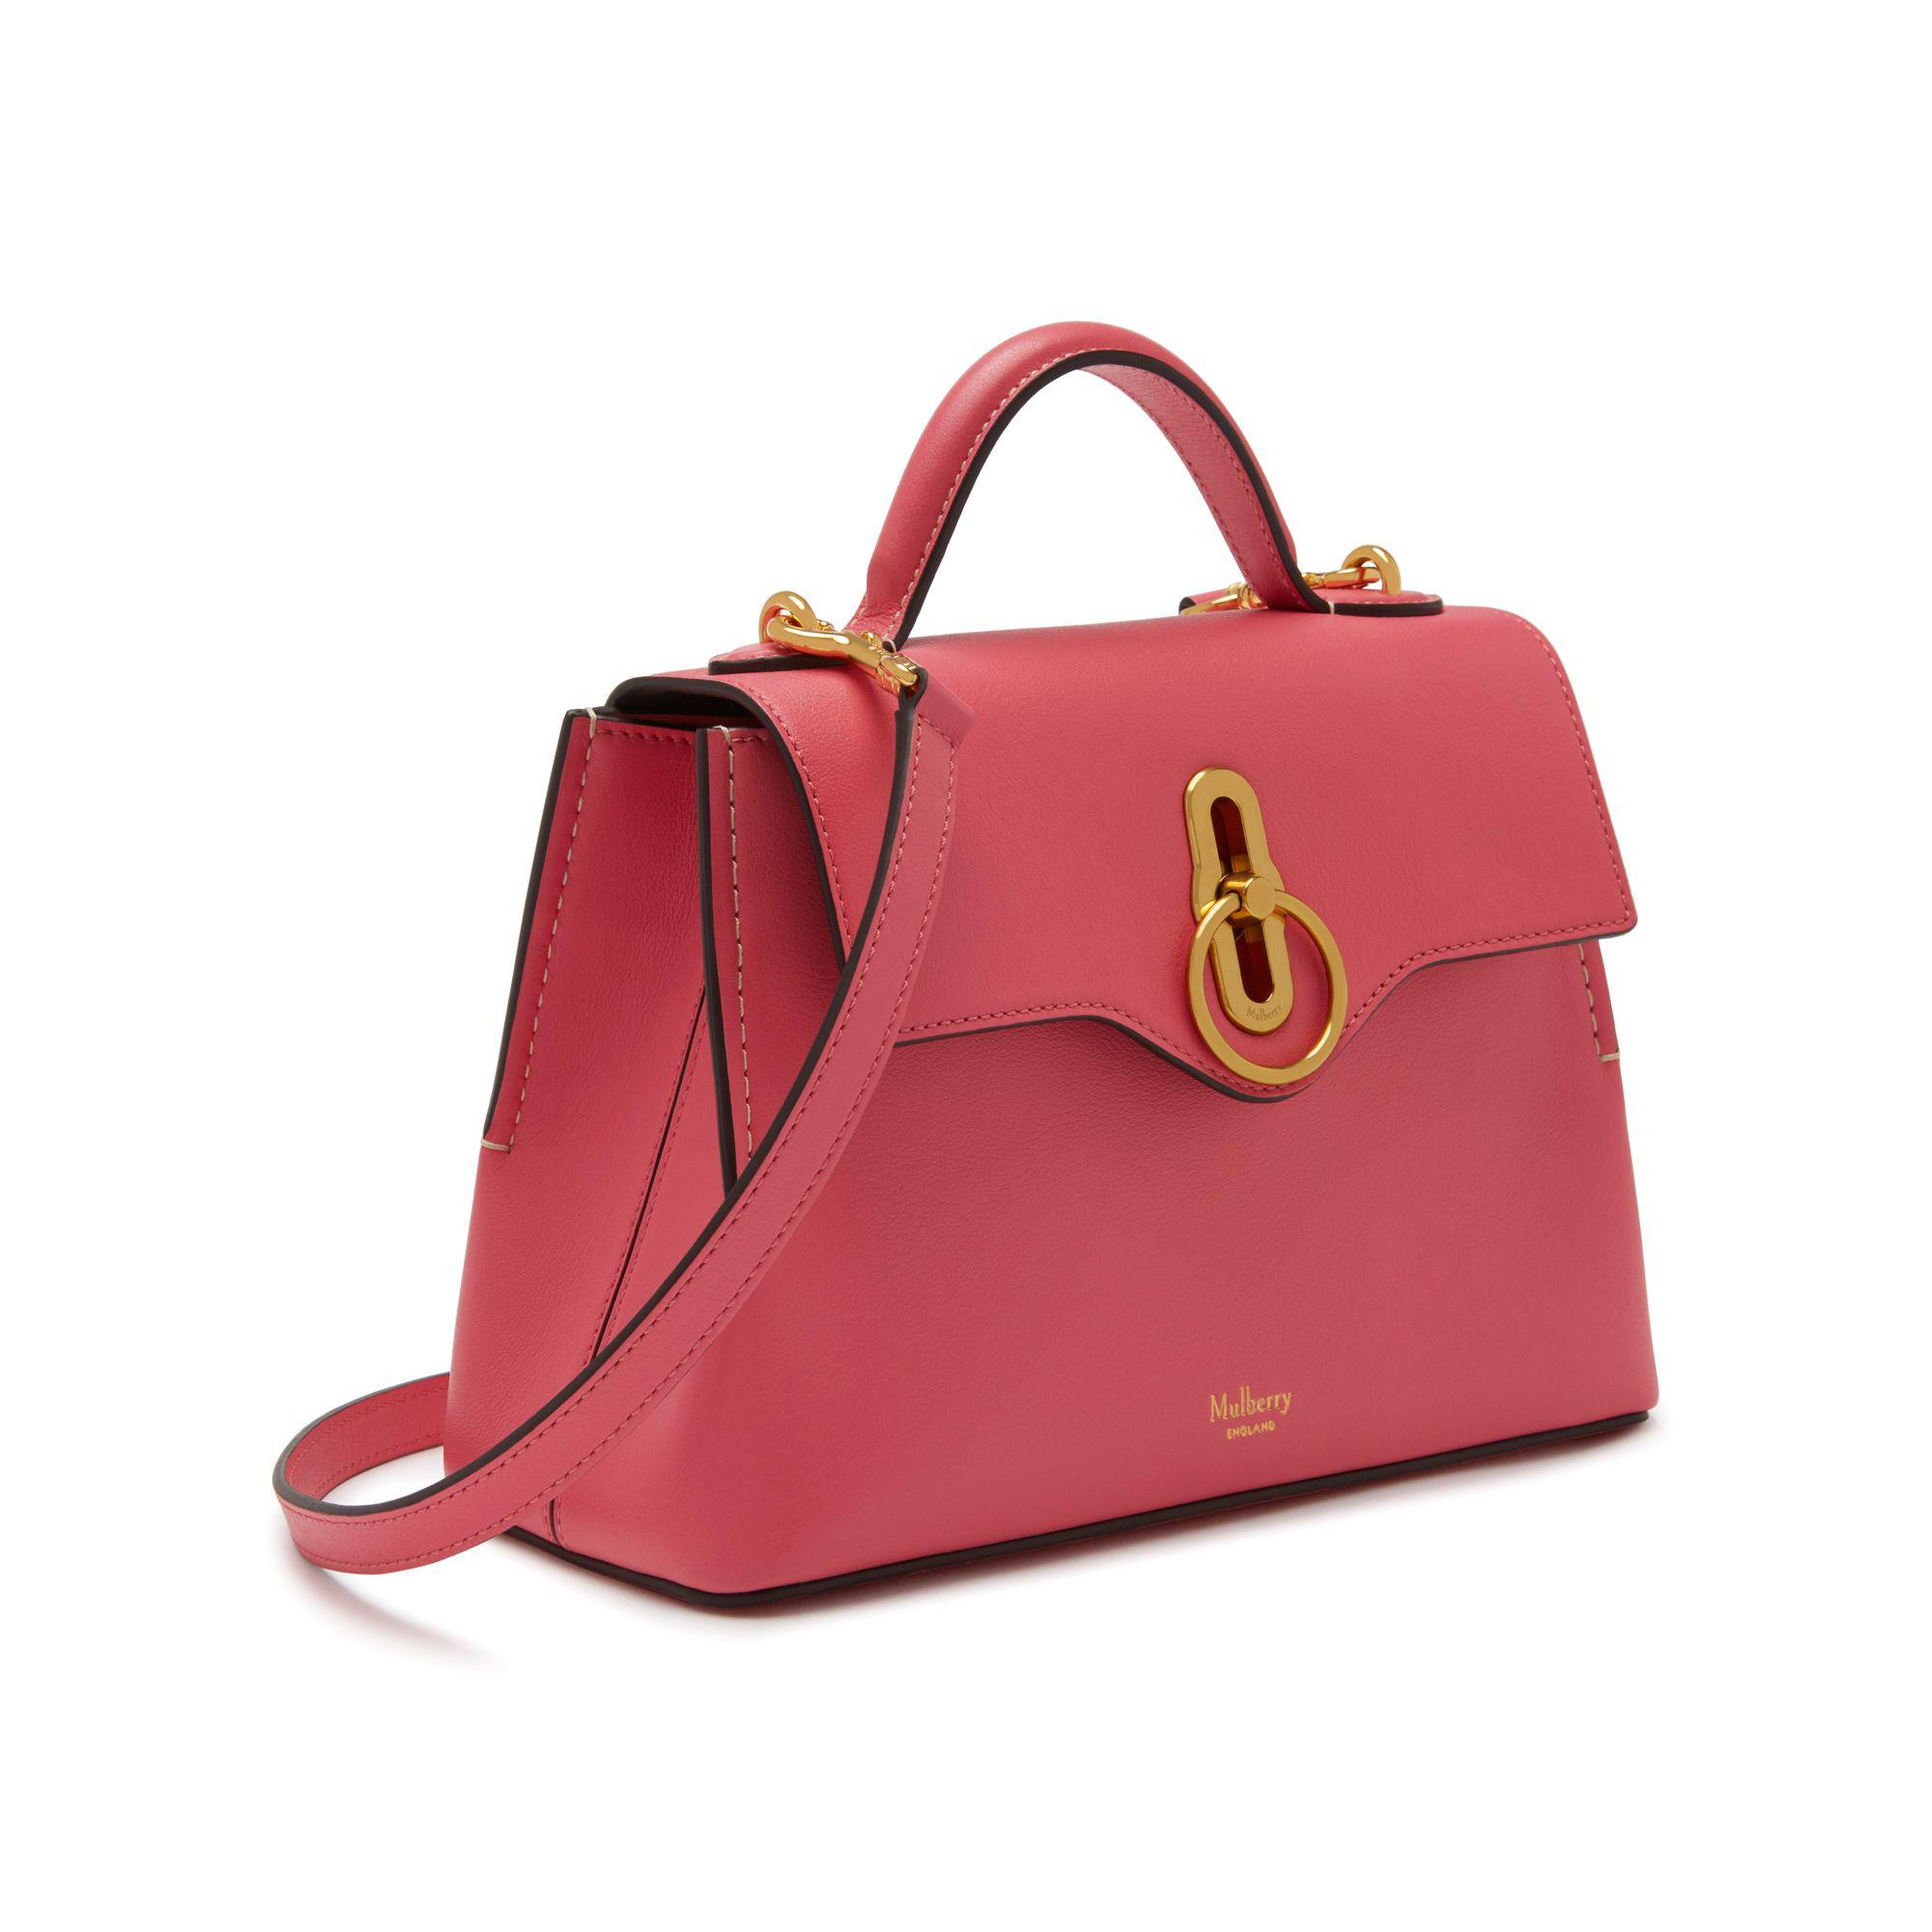 Lyst - Mulberry Mini Seaton in Pink 8c91f13c7d0ae